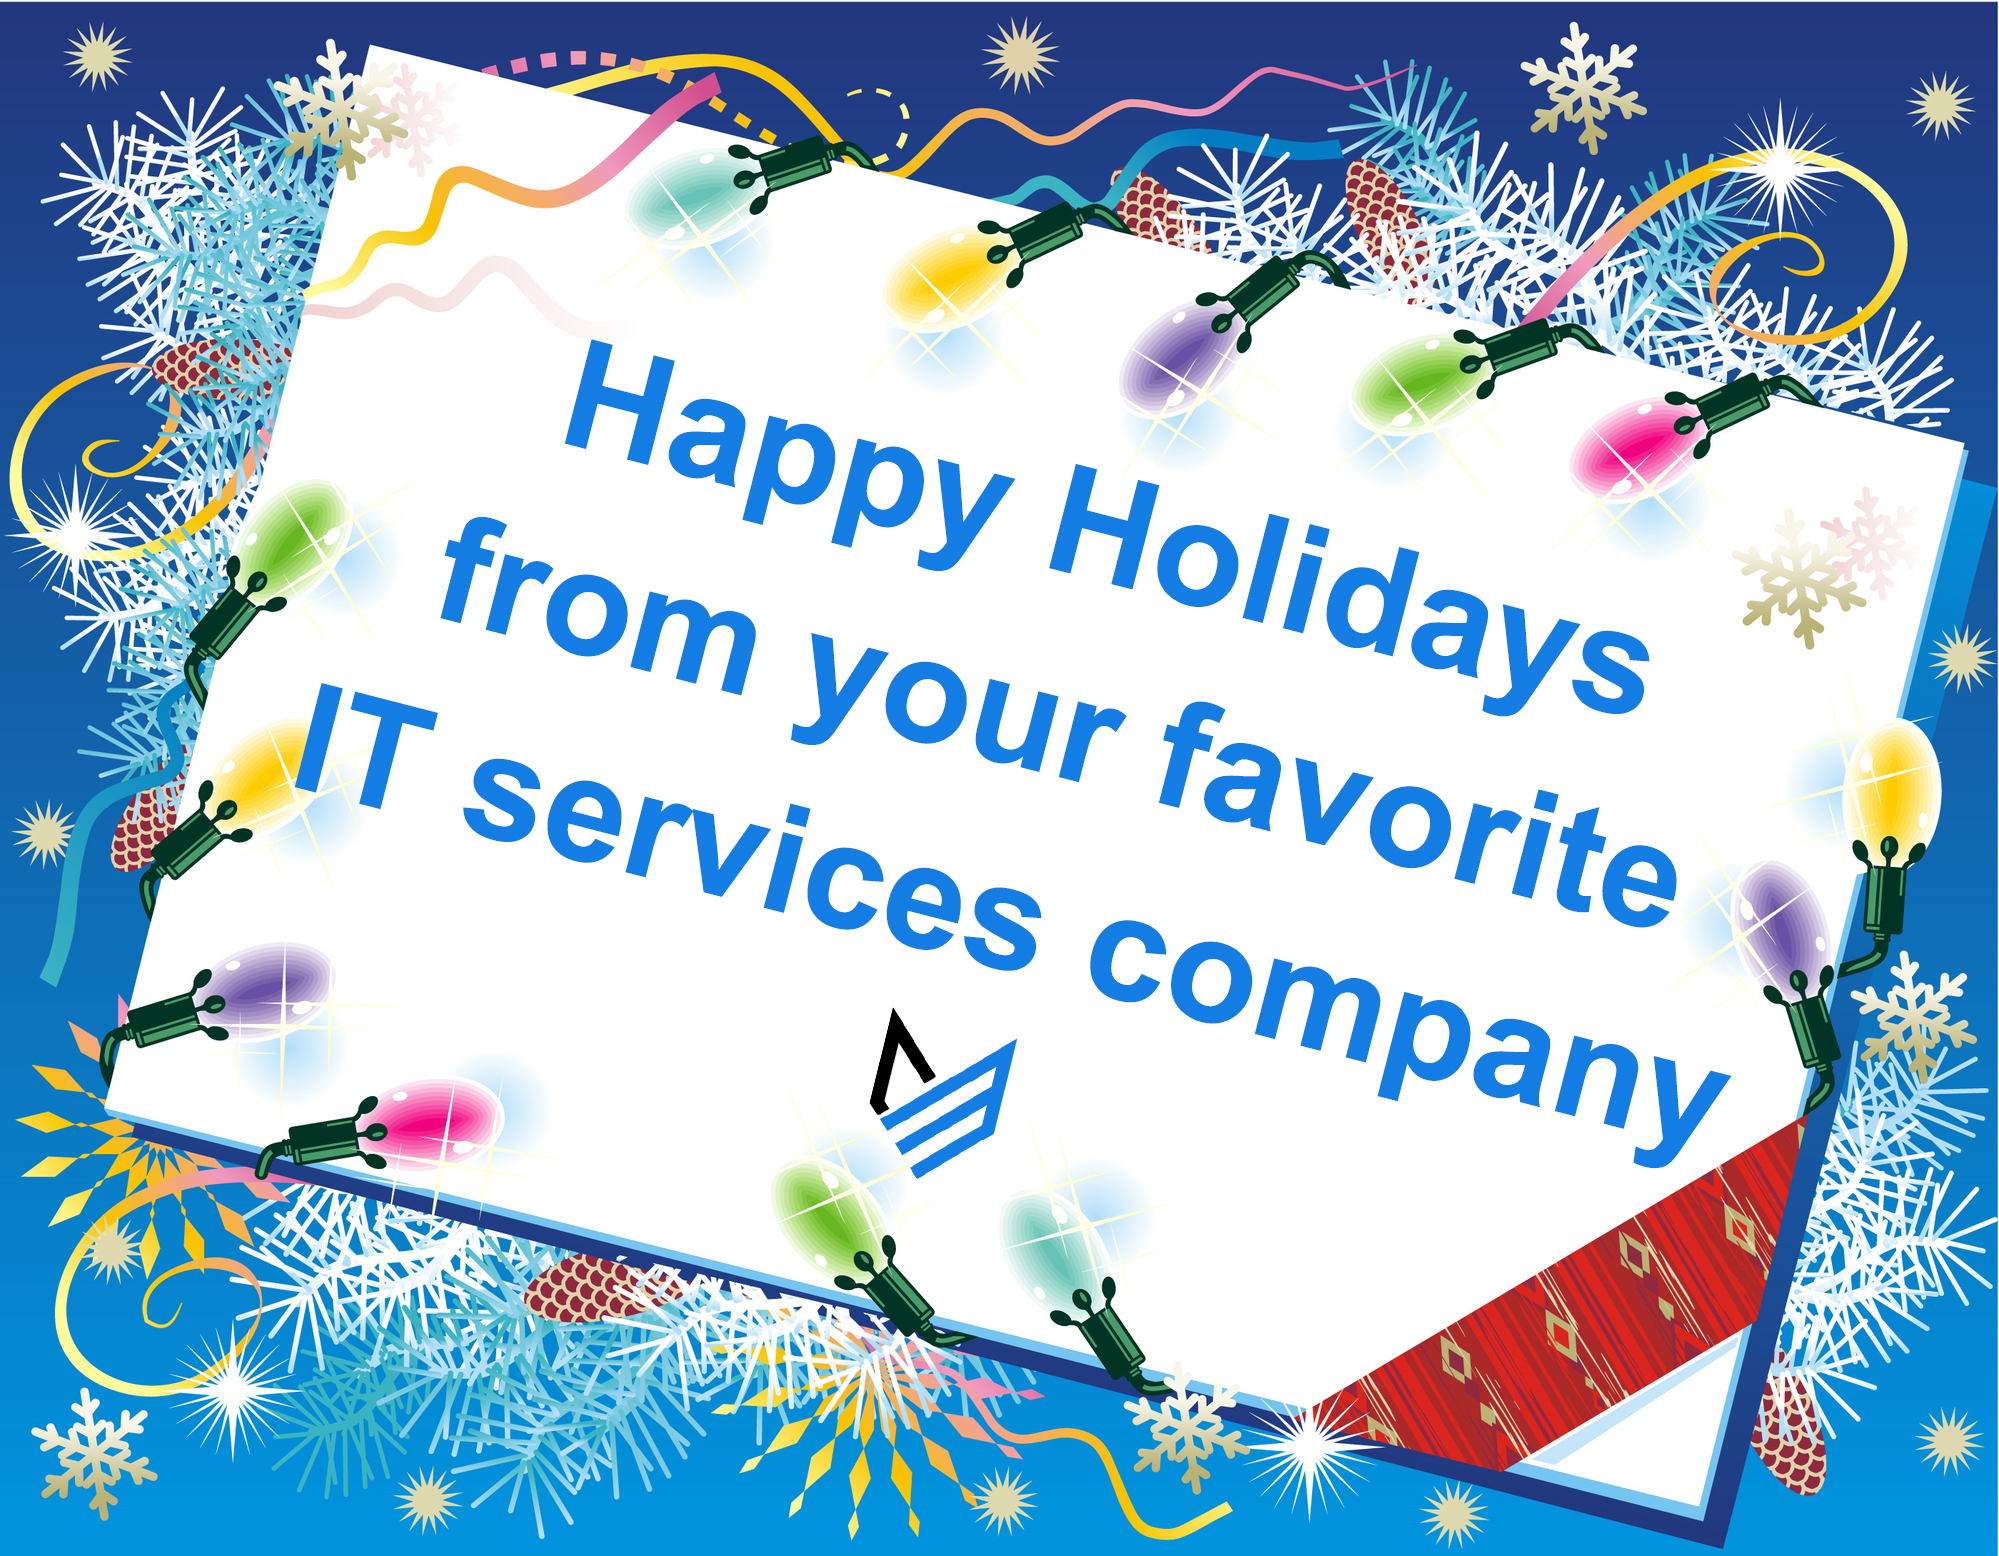 Holiday e-cards Could Contain Malware Or Viruses